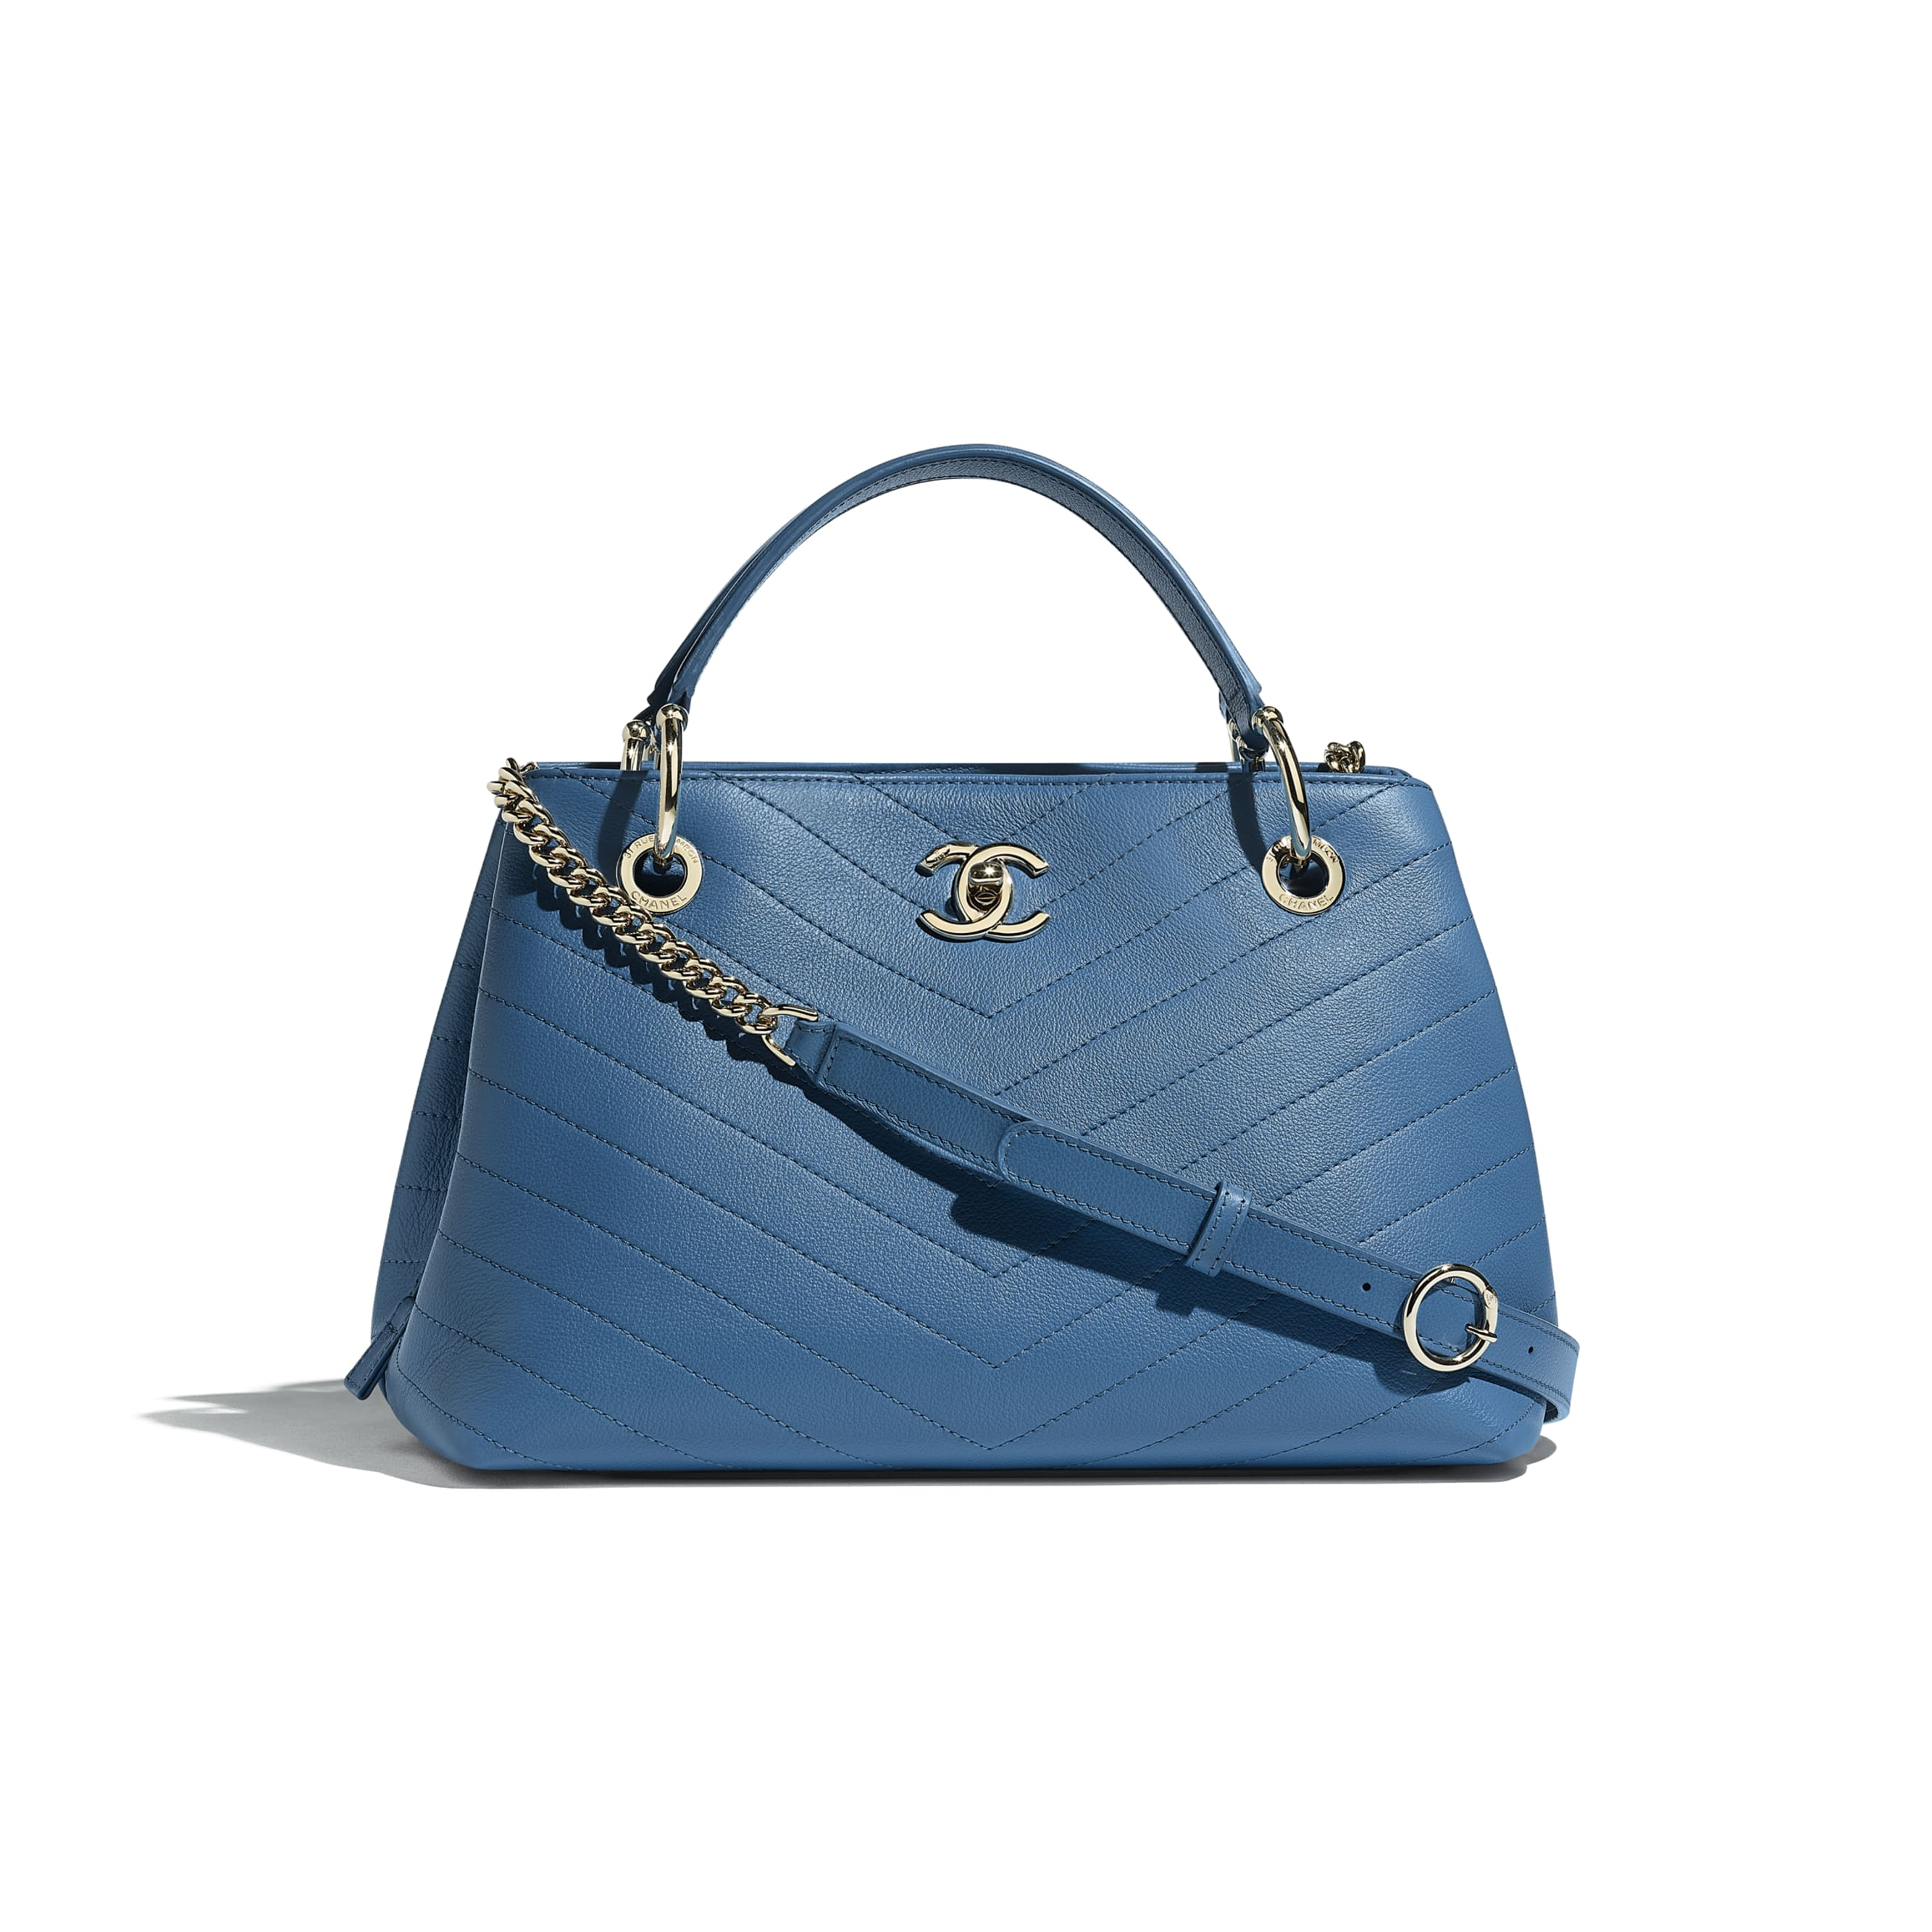 Small Zipped Shopping Bag - Blue - Grained Calfskin & Gold-Tone Metal - Default view - see standard sized version